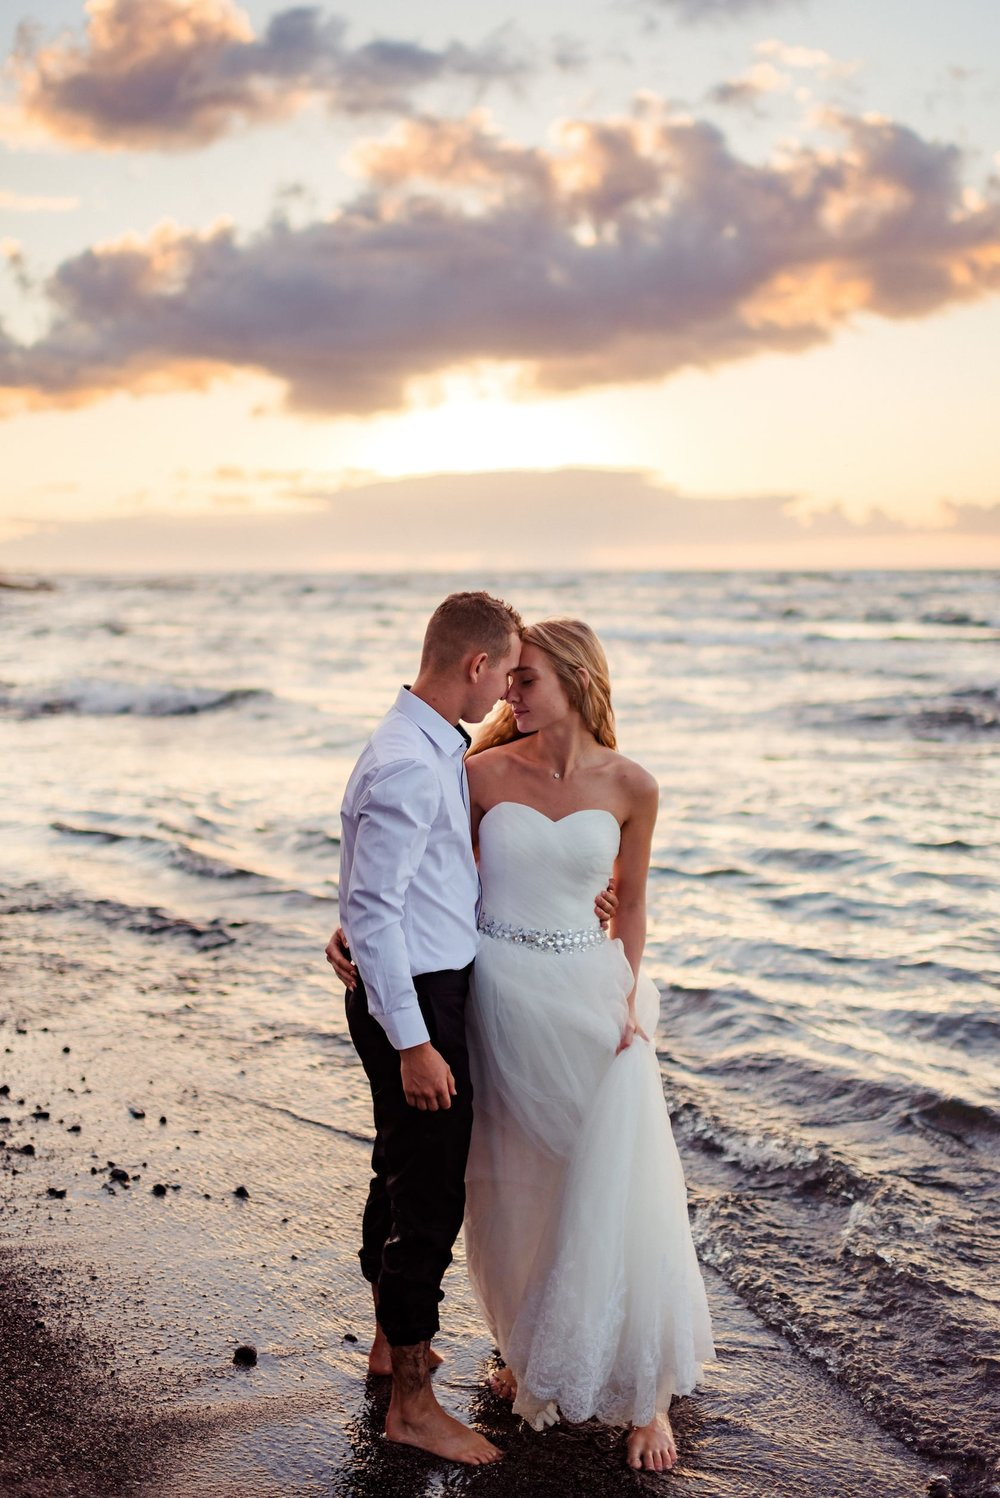 Big-Island-Elopement-Private-Wedding-Hawaii-Beach-17.jpg